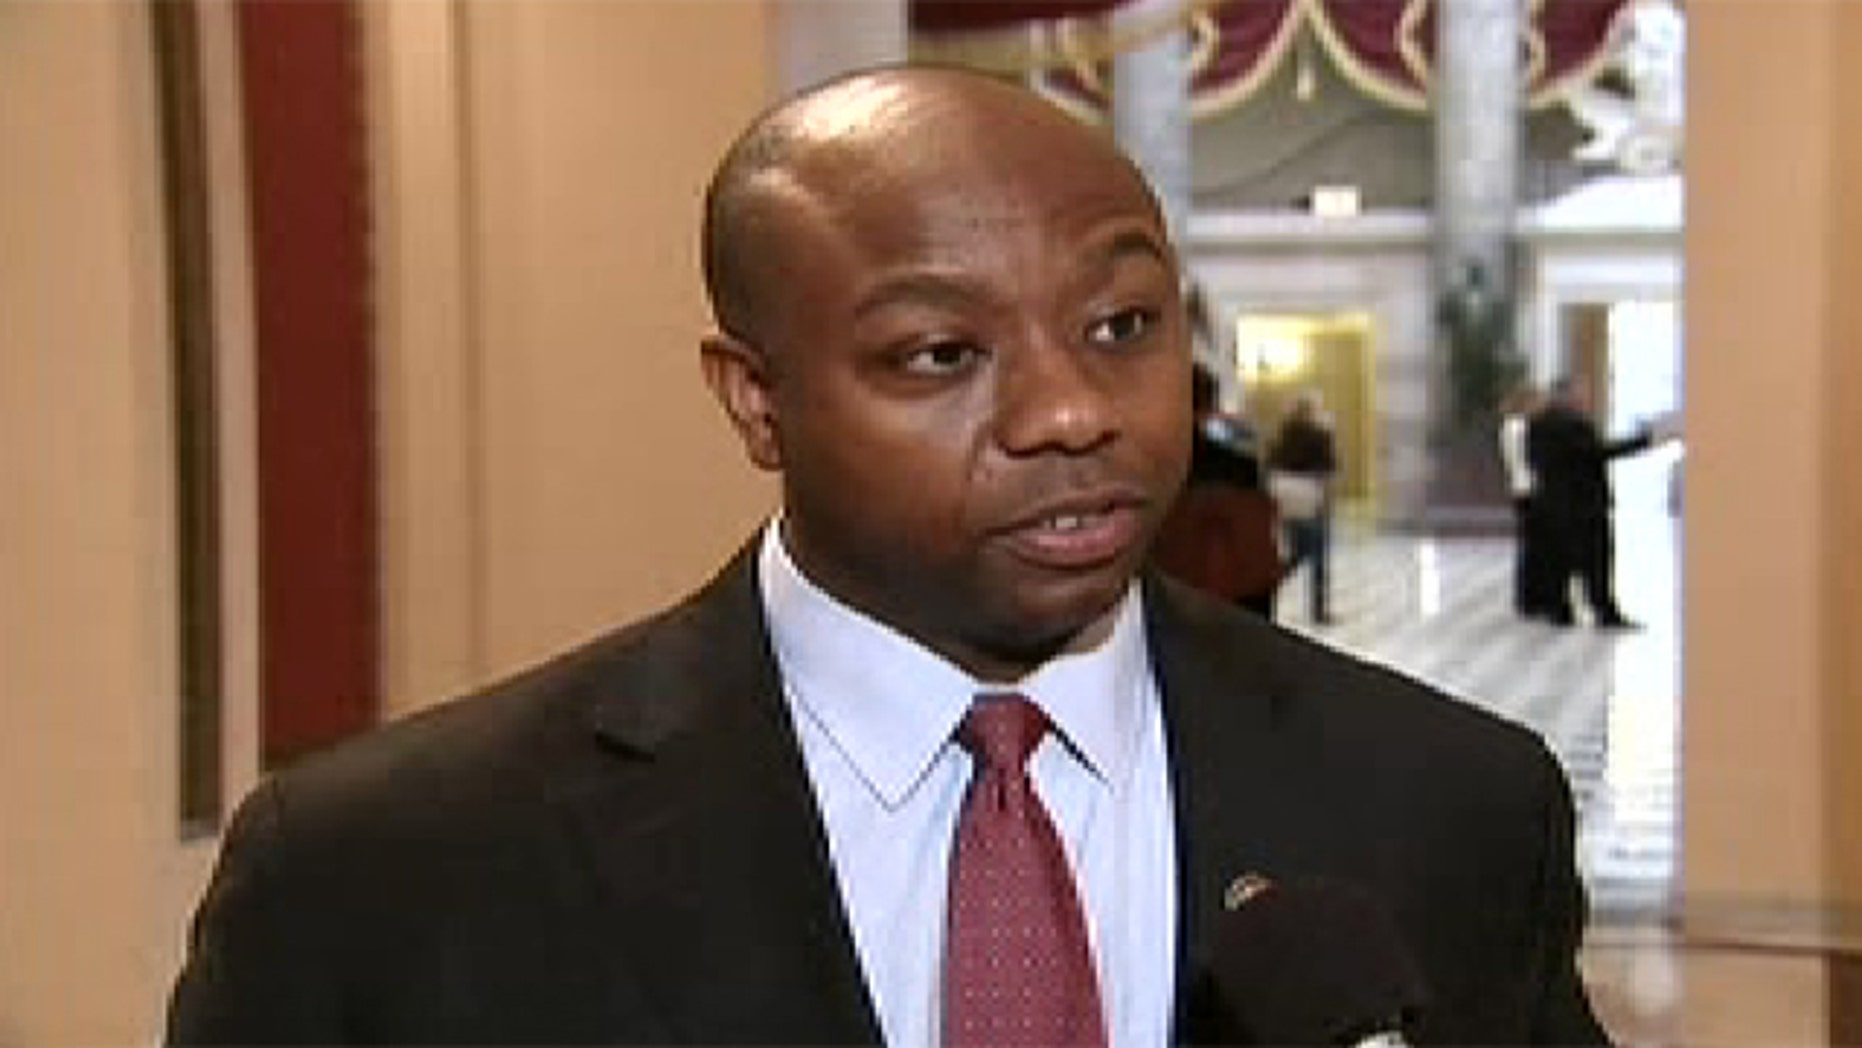 Feb. 11, 2011: Rep. Tim Scott, R-S.C., warns that a government shutdown is 'on the table' if Republicans and Democrats can't agree on spending cuts.